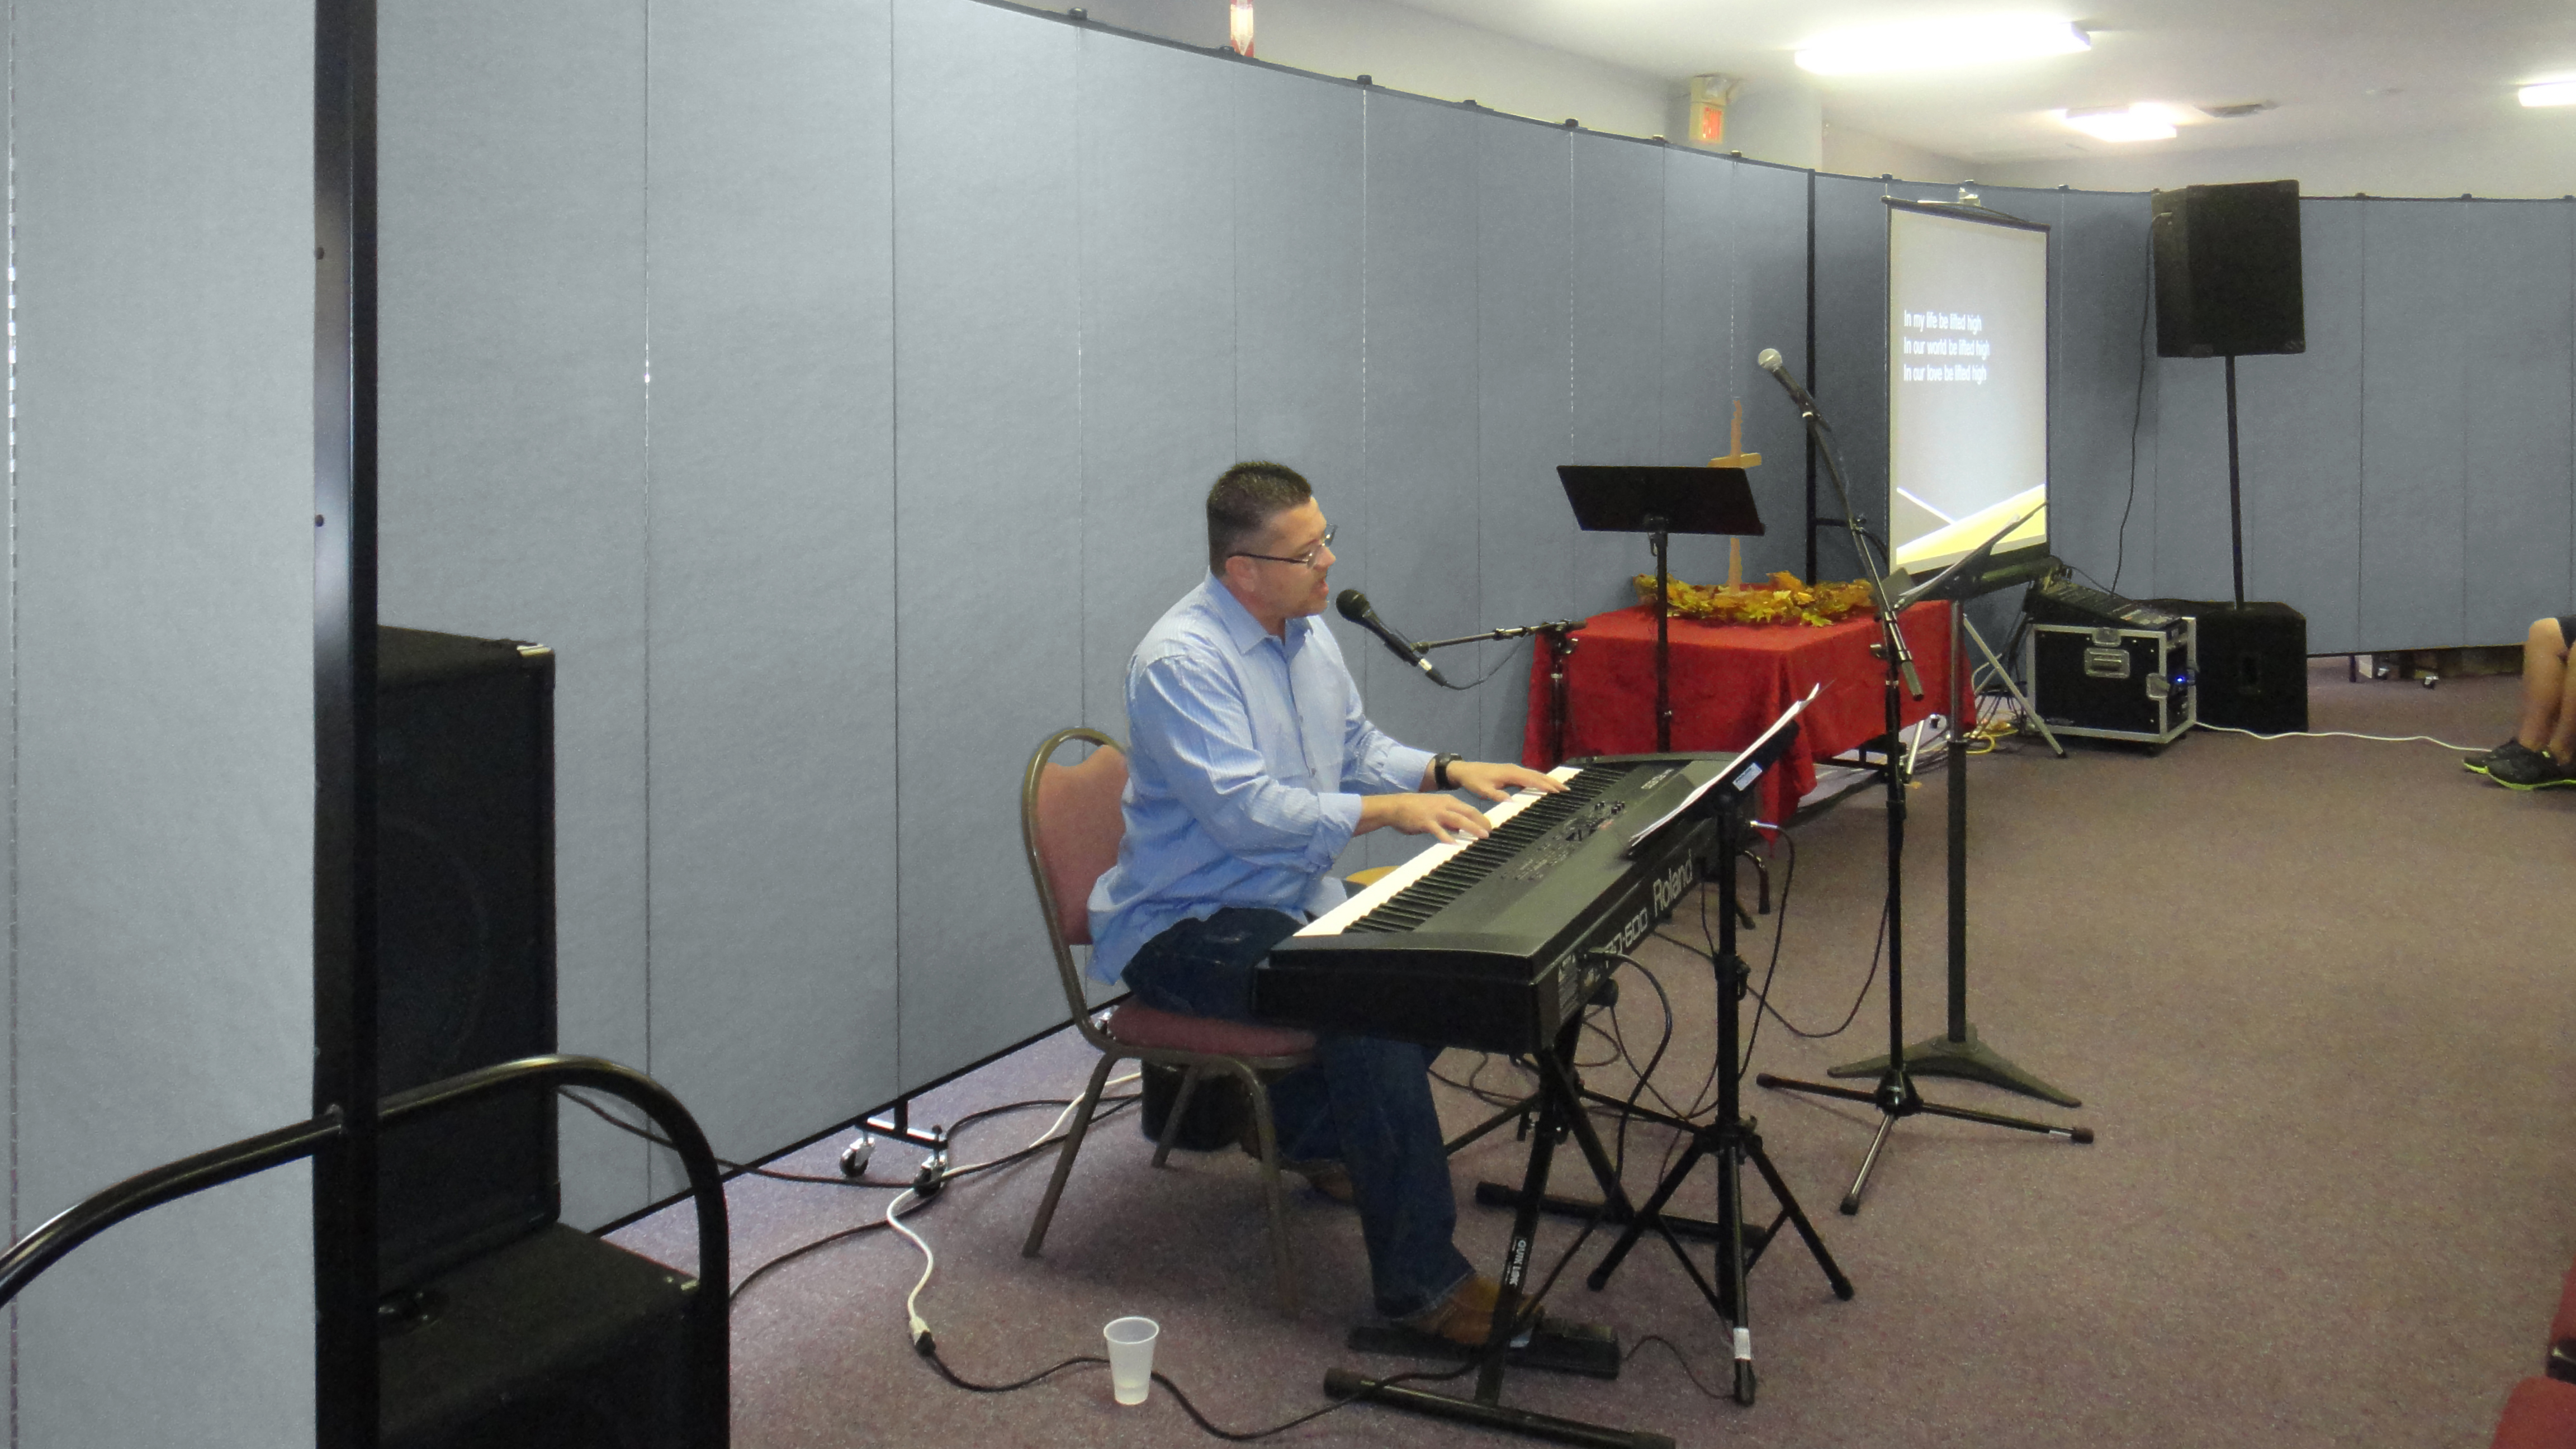 Room Dividers surround a church worship pastor leading song an praise from behind a keyboard